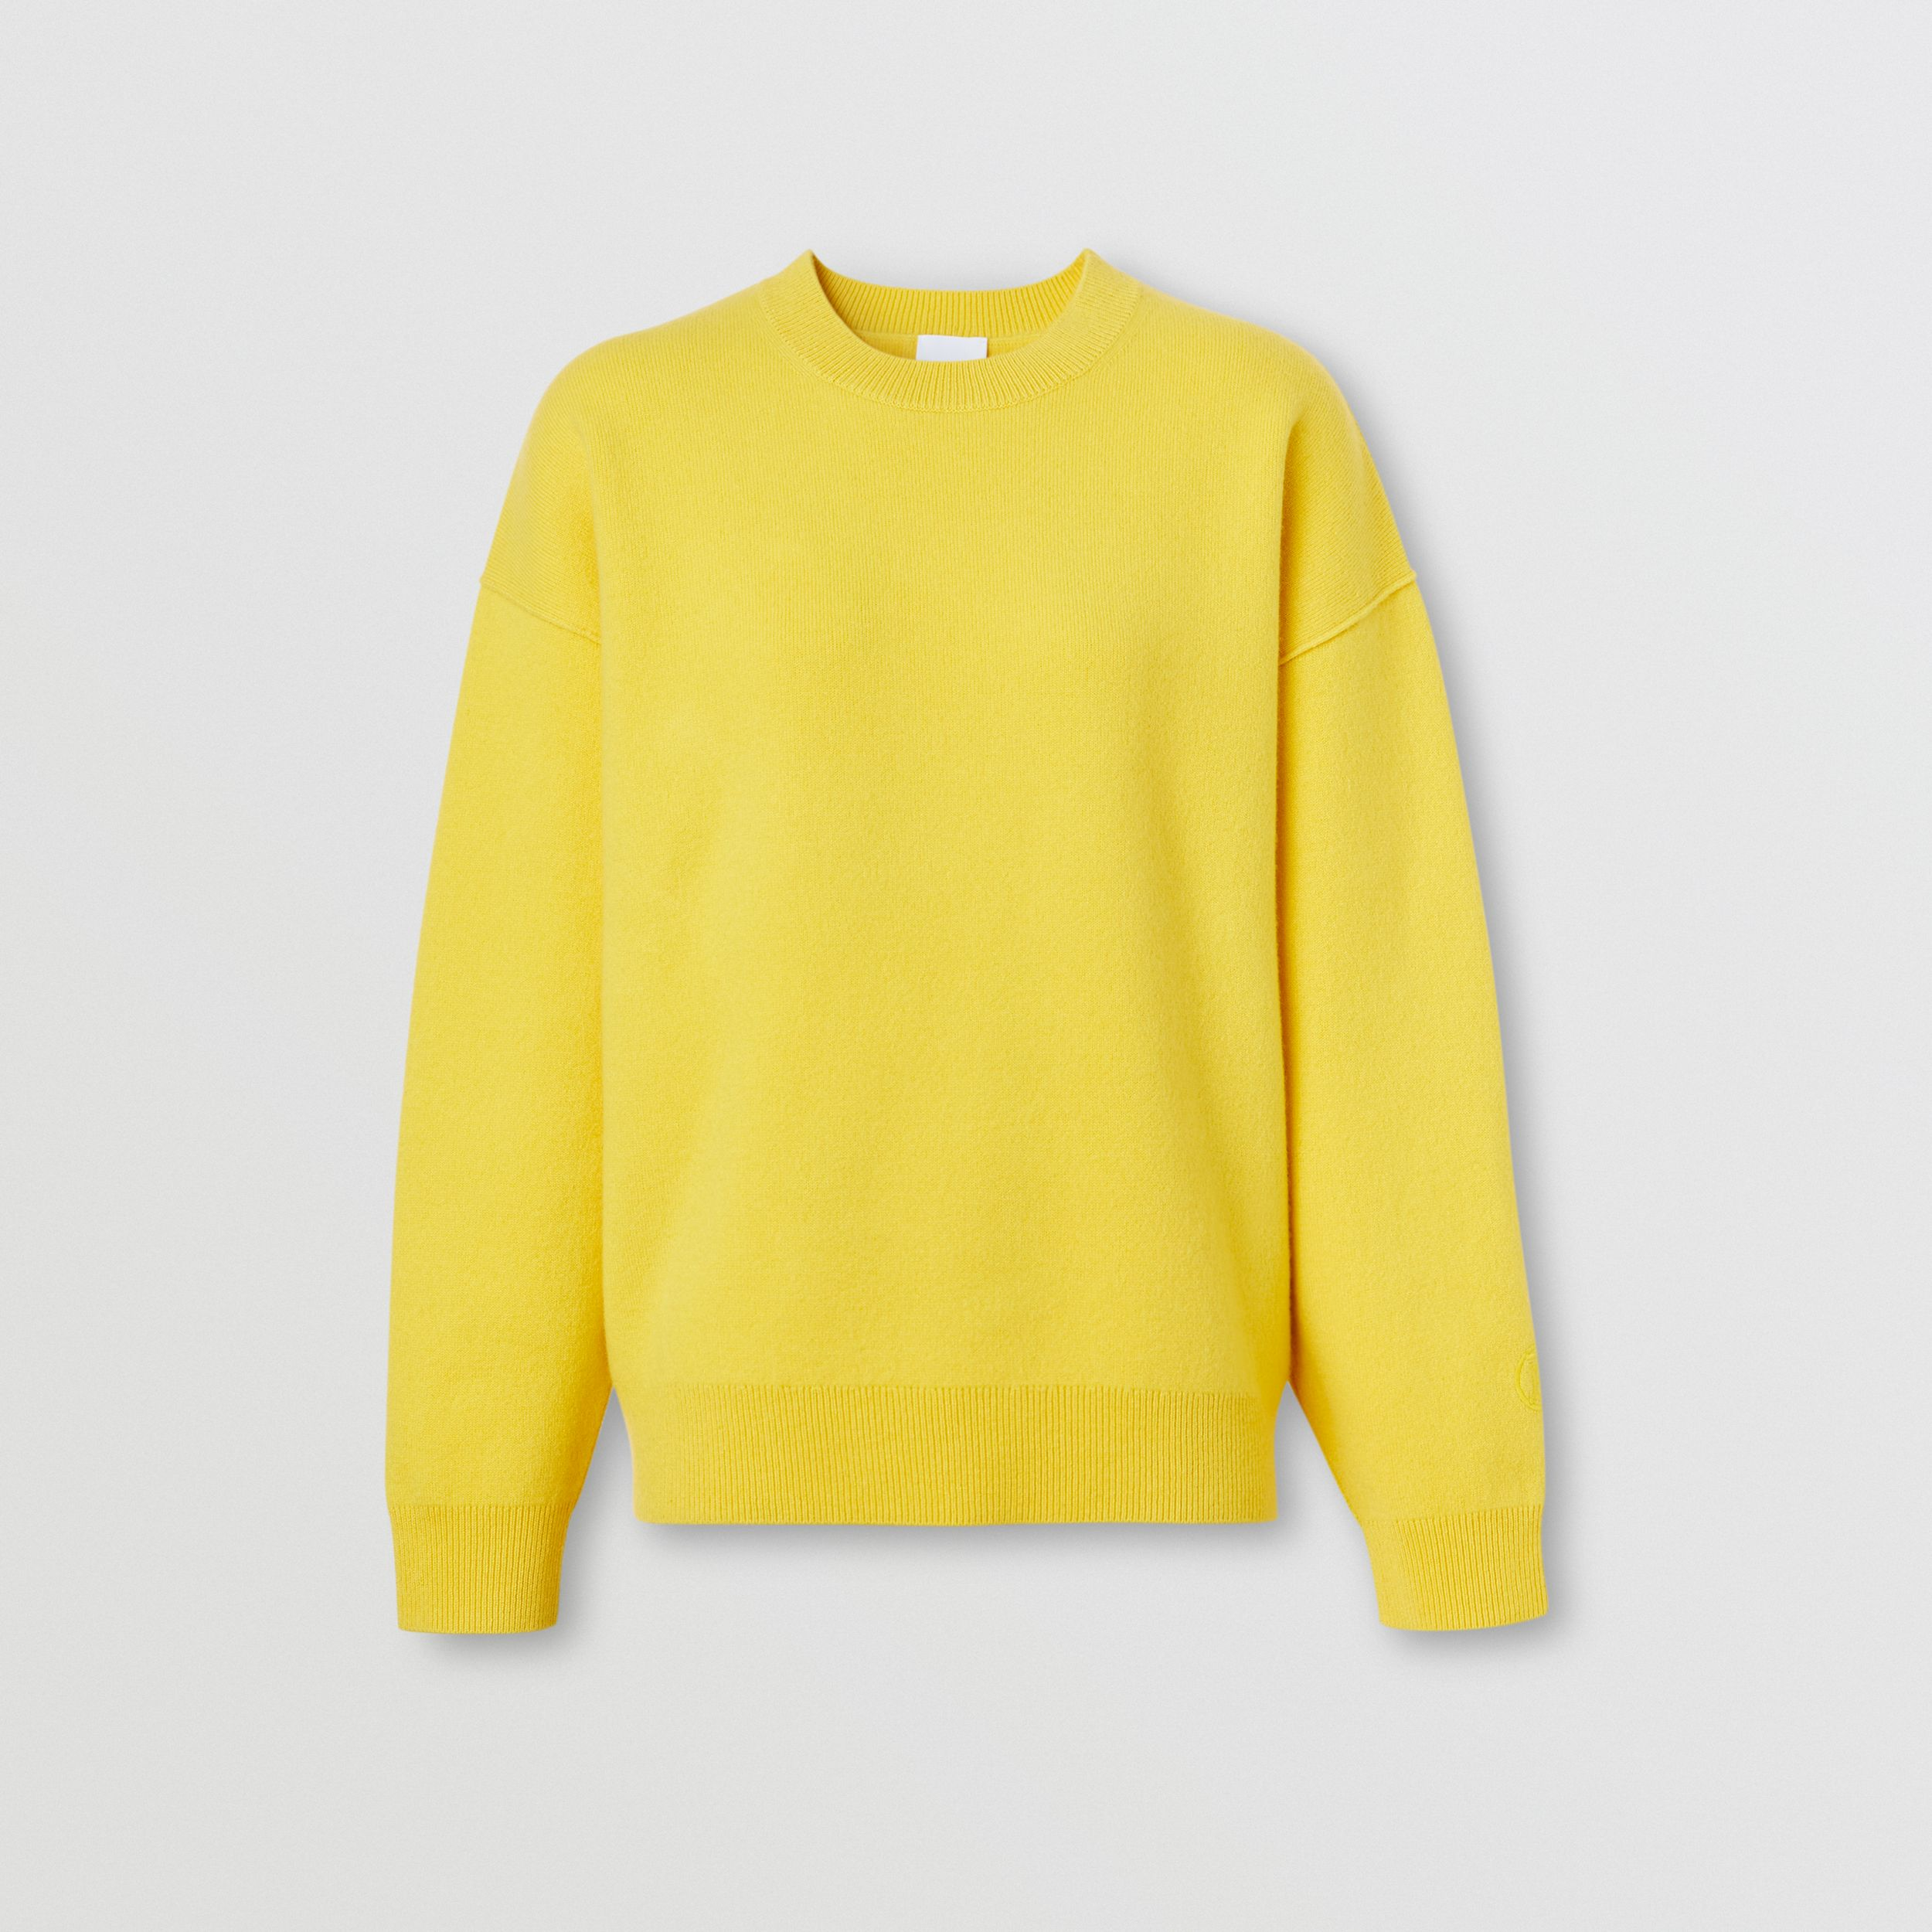 Monogram Motif Cashmere Blend Sweater in Bright Yellow - Women | Burberry - 4